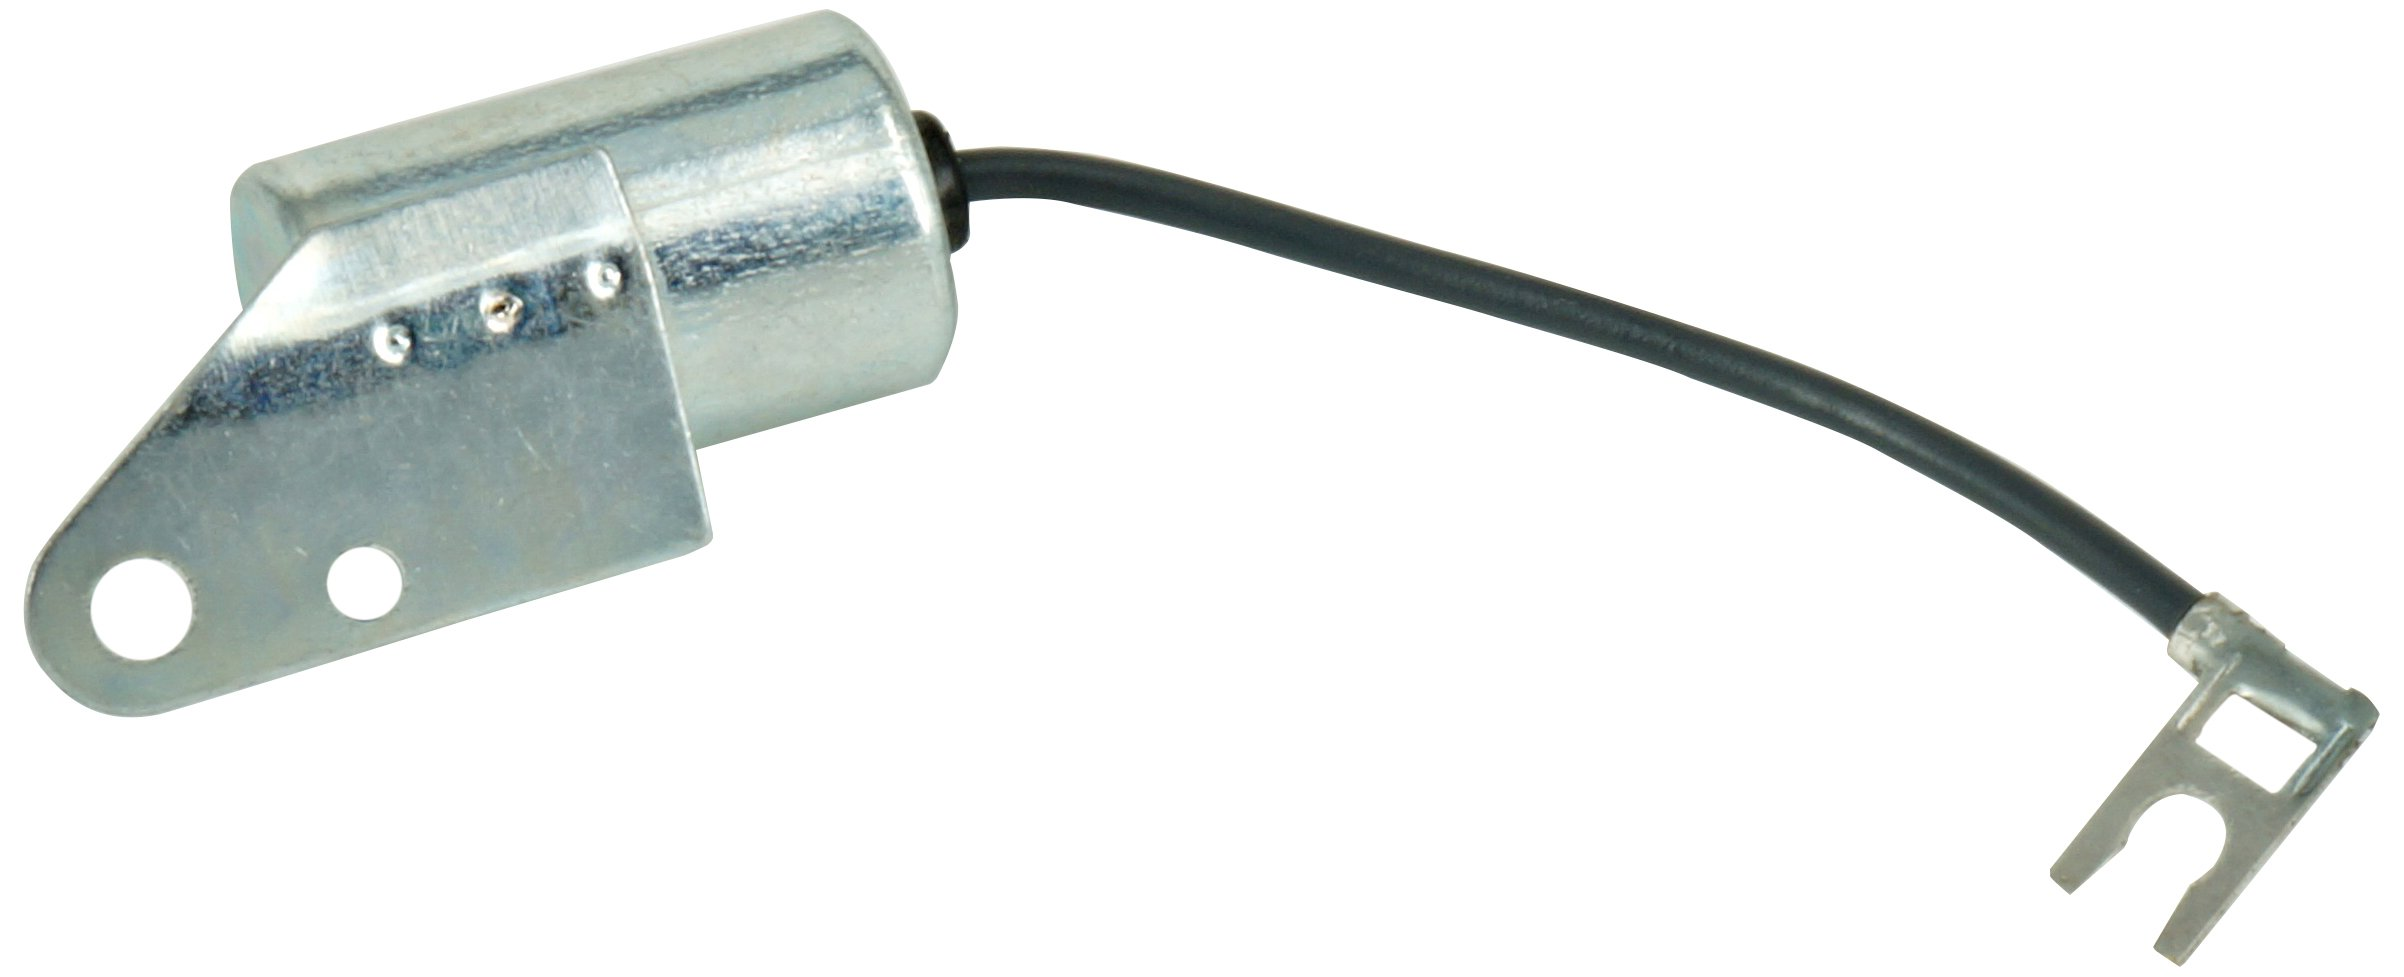 Standard Motor Products FD75 Ignition Condenser